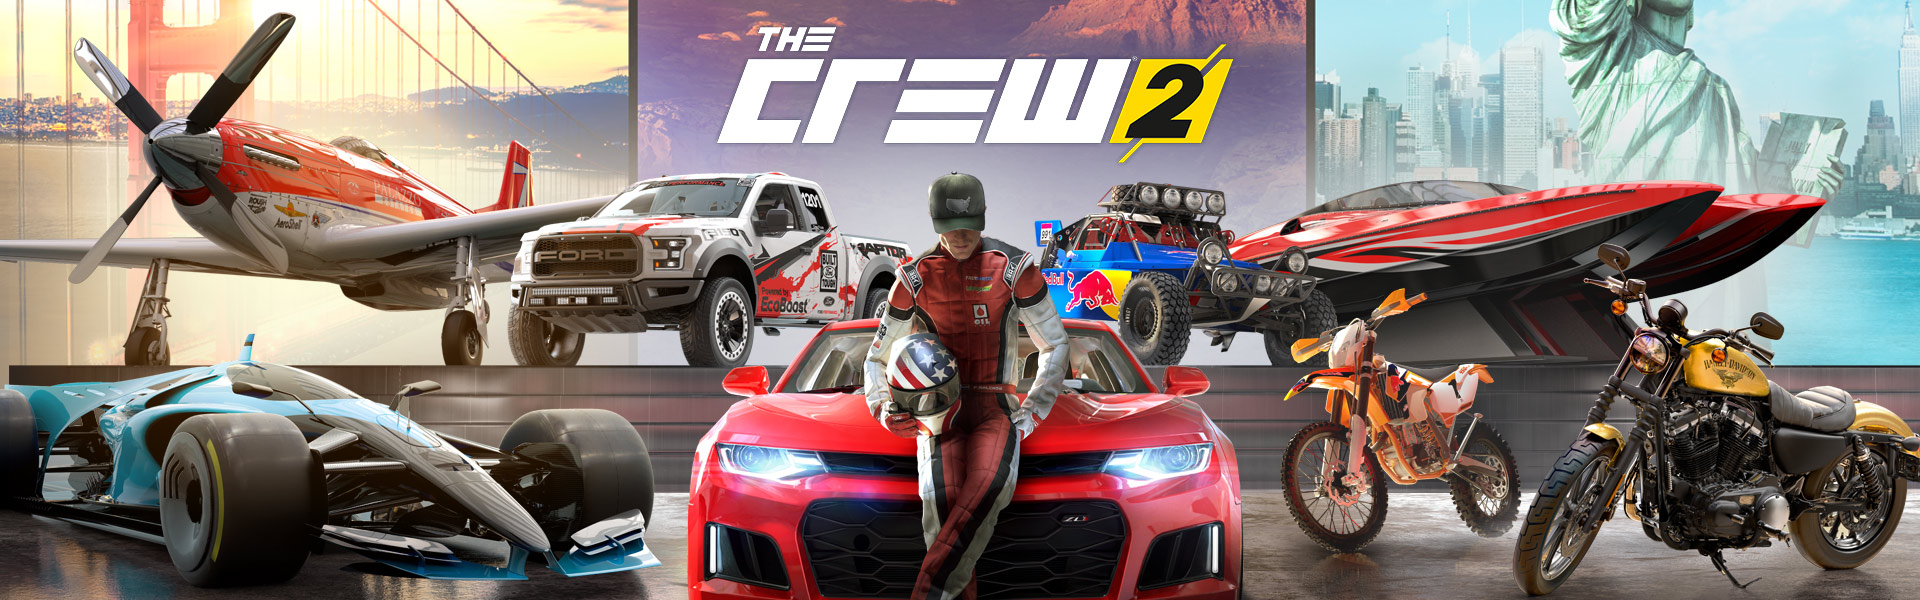 The Crew 2, Man stands in front of a racecar, motorcycles, a plane, an off road vehicle, and a boat